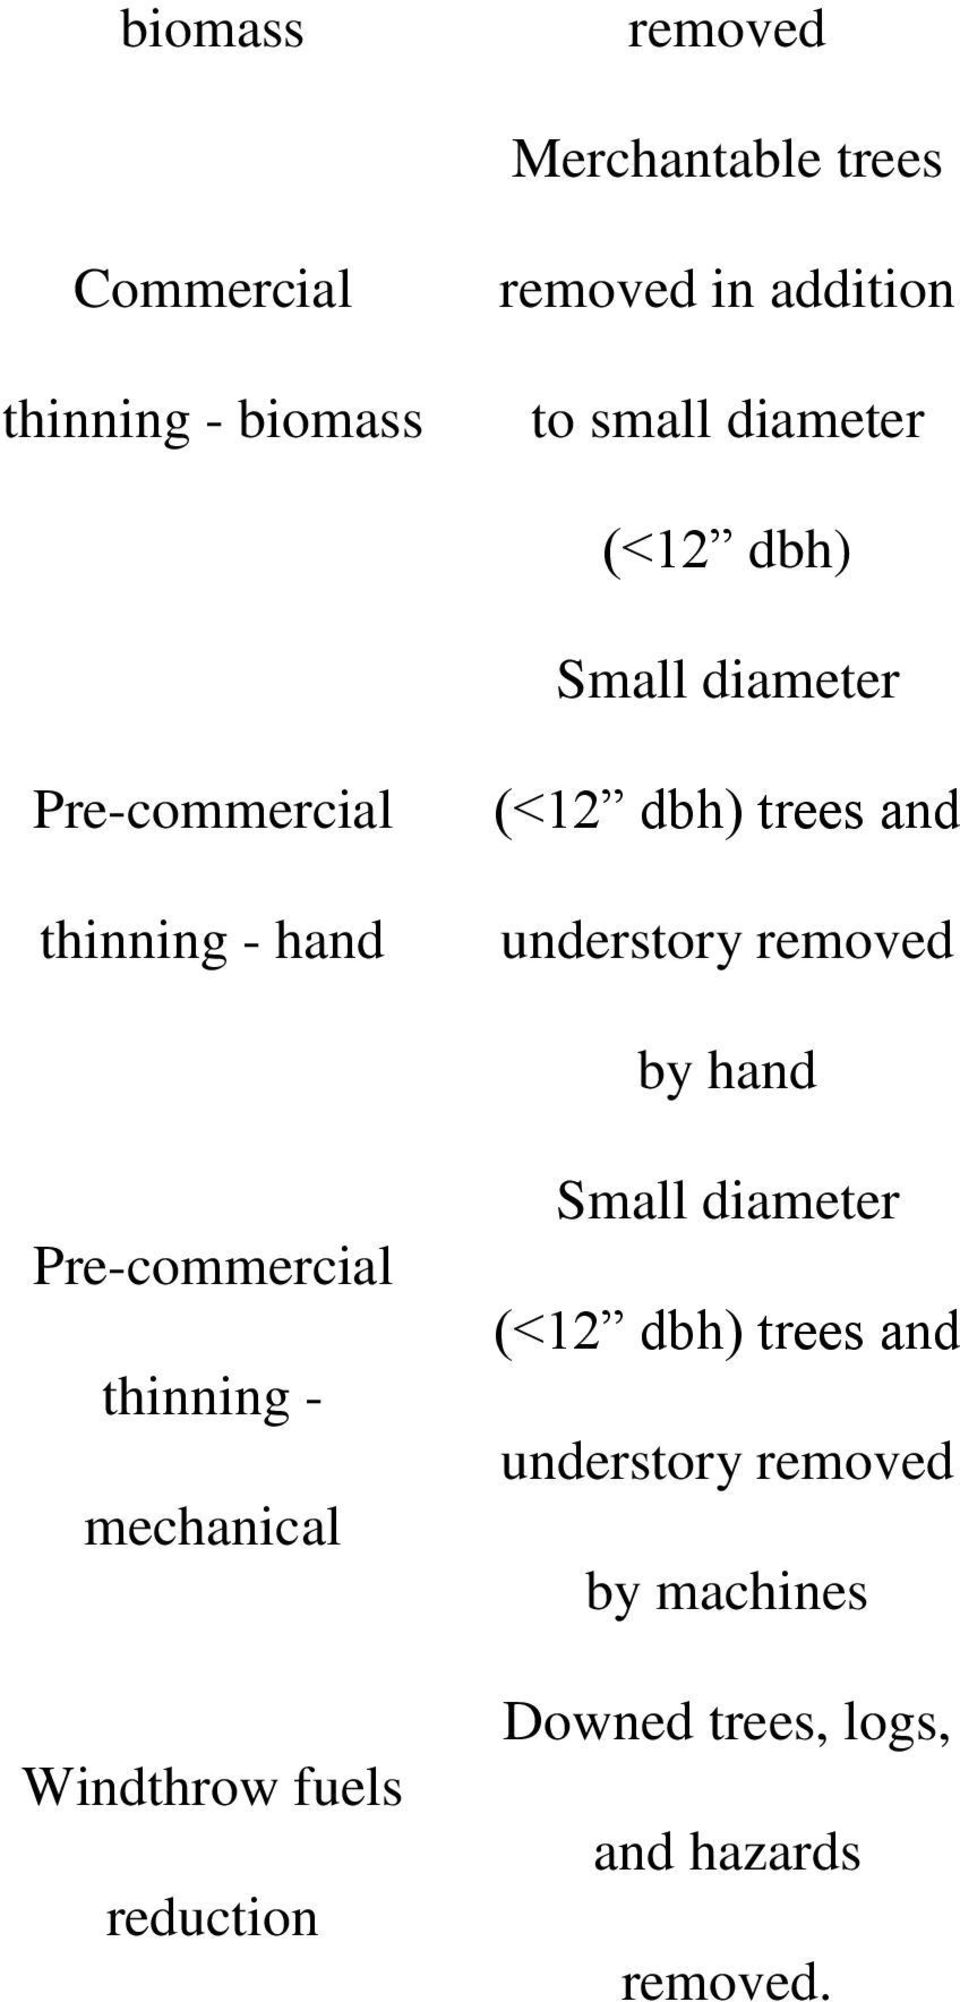 understory removed by hand Pre-commercial thinning - mechanical Windthrow fuels reduction